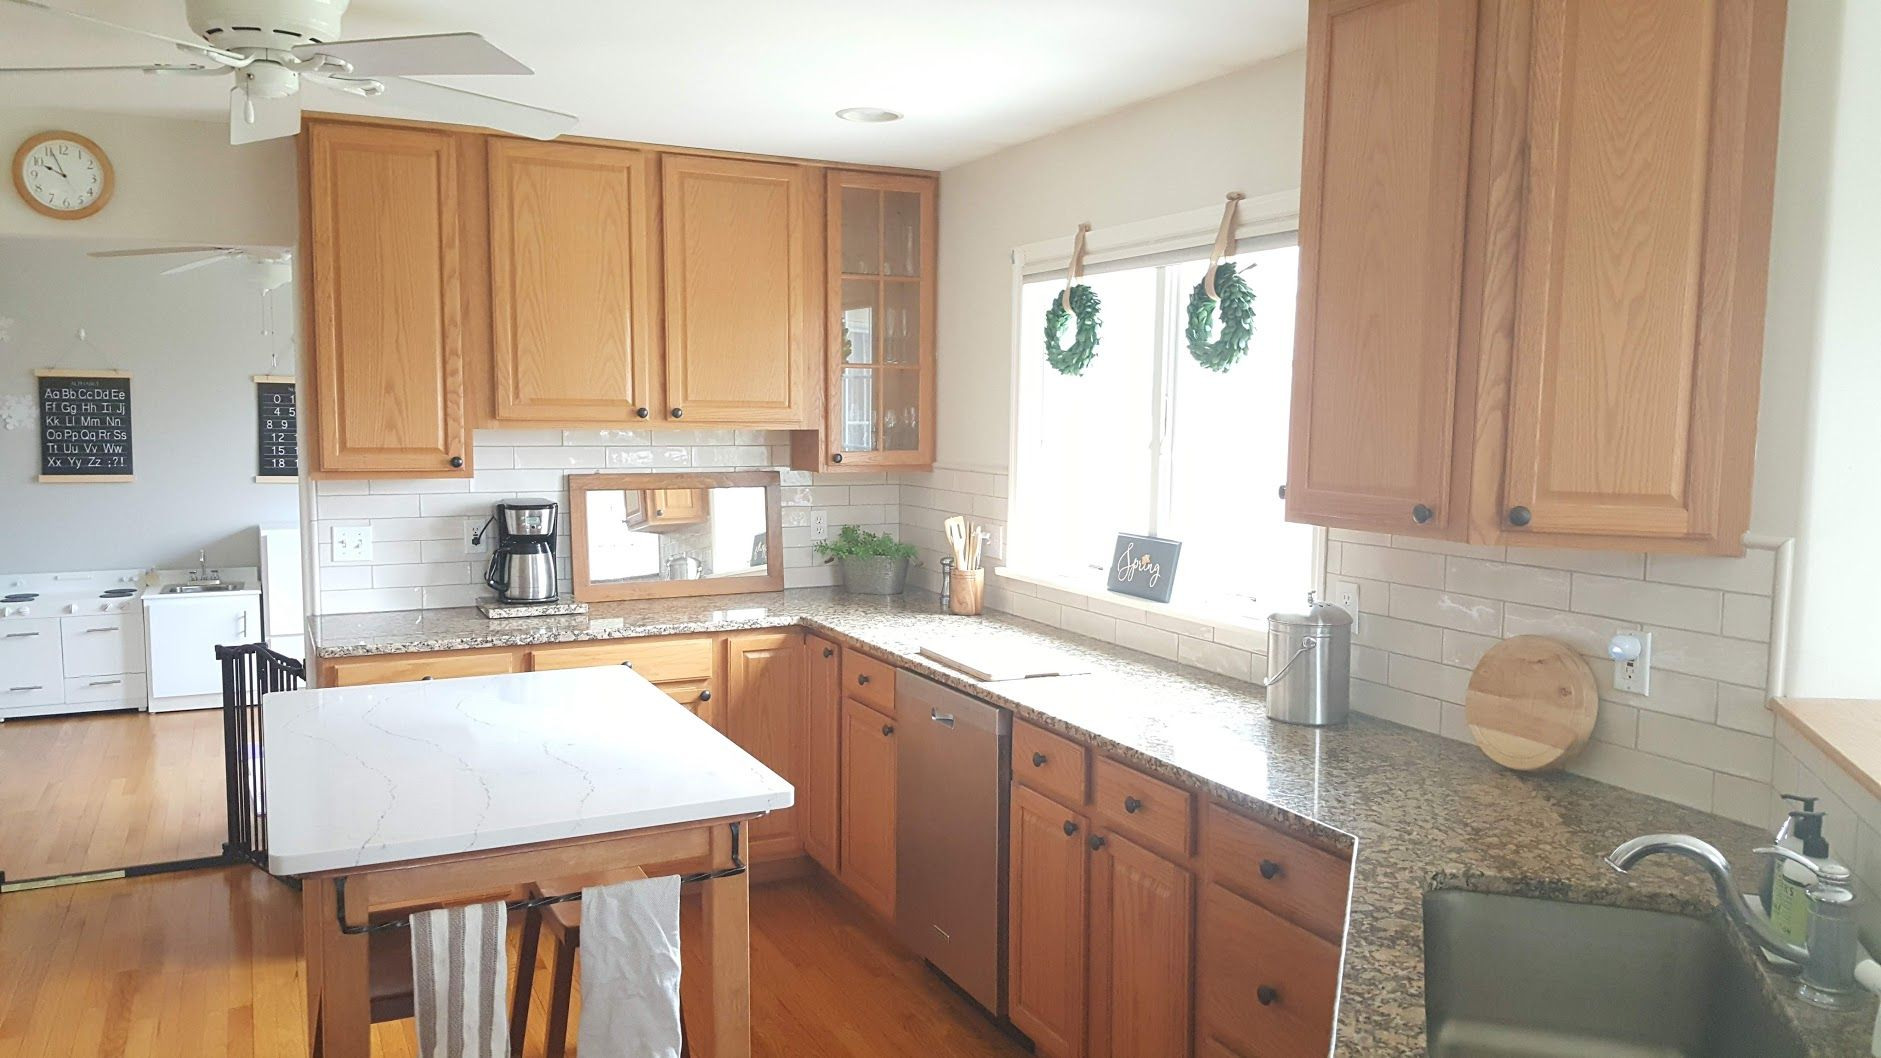 Update A Kitchen W Out Painting Oak Cabinets Growit Buildit Honey Oak Cabinets Oak Cabinets Painting Oak Cabinets